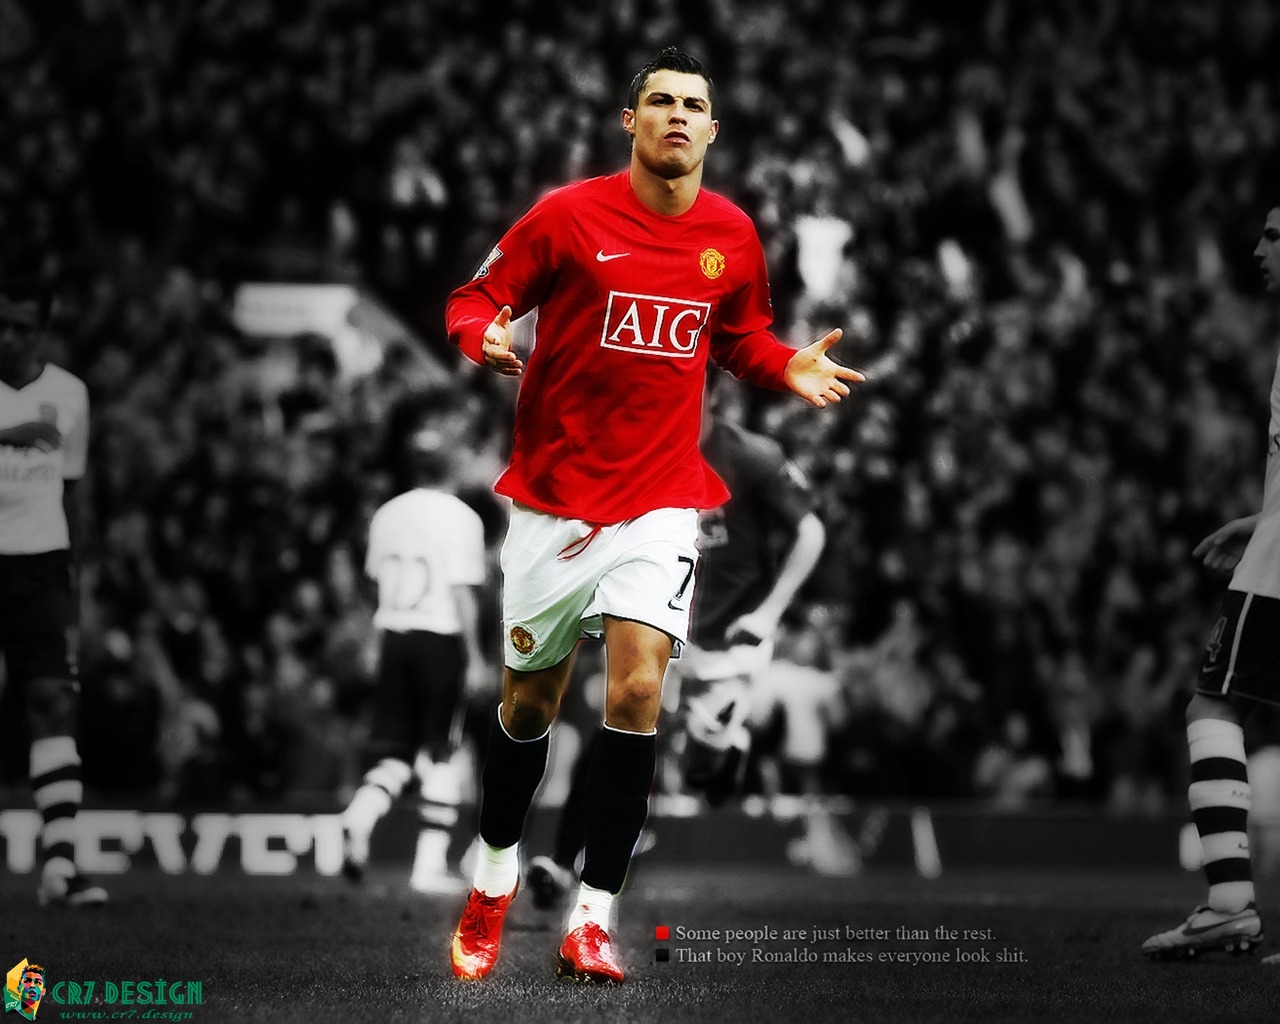 ciristiano-ronaldo-wallpaper-design-100